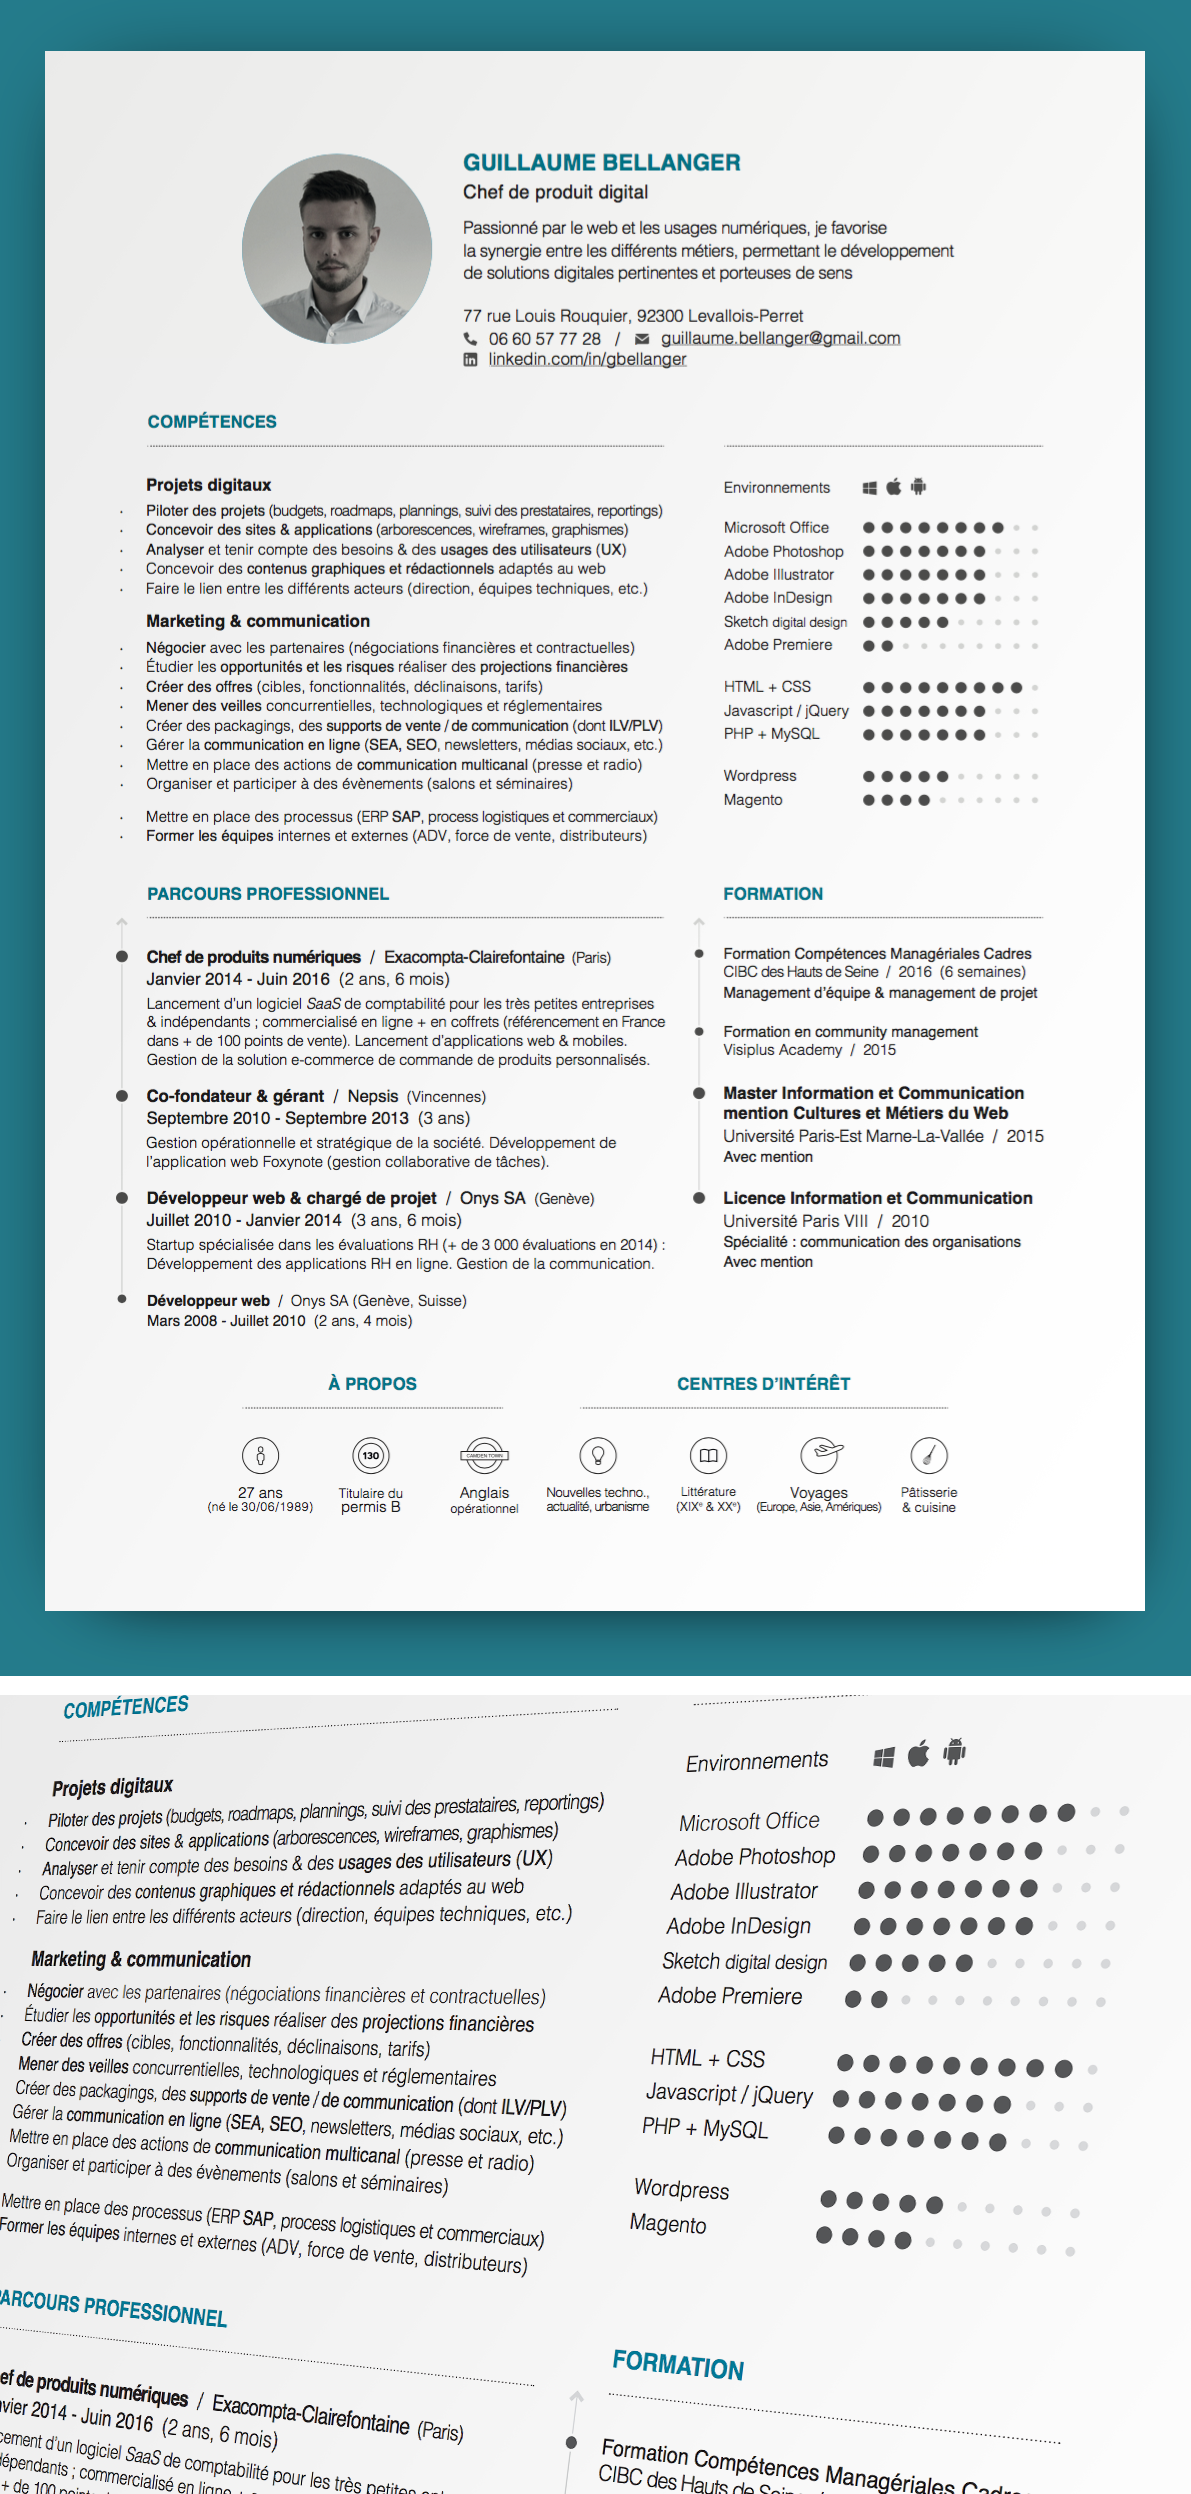 curriculum vitae cv resume    guillaume bellanger    chef de produit digital    digital product